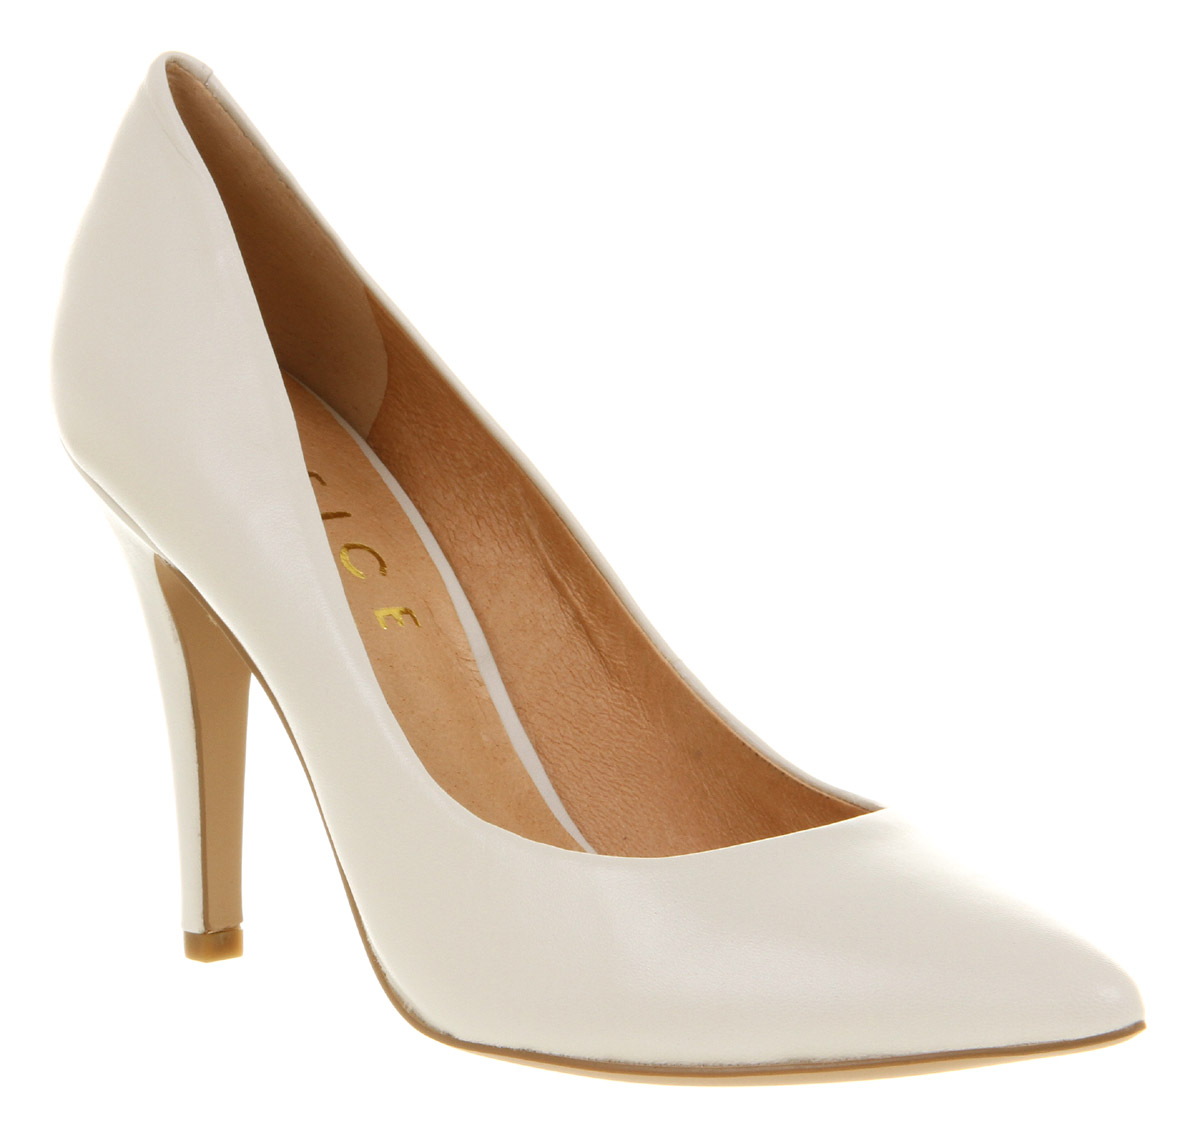 Image is loading Womens-Office-Kandi-Off-White-Leather-High-Heel-